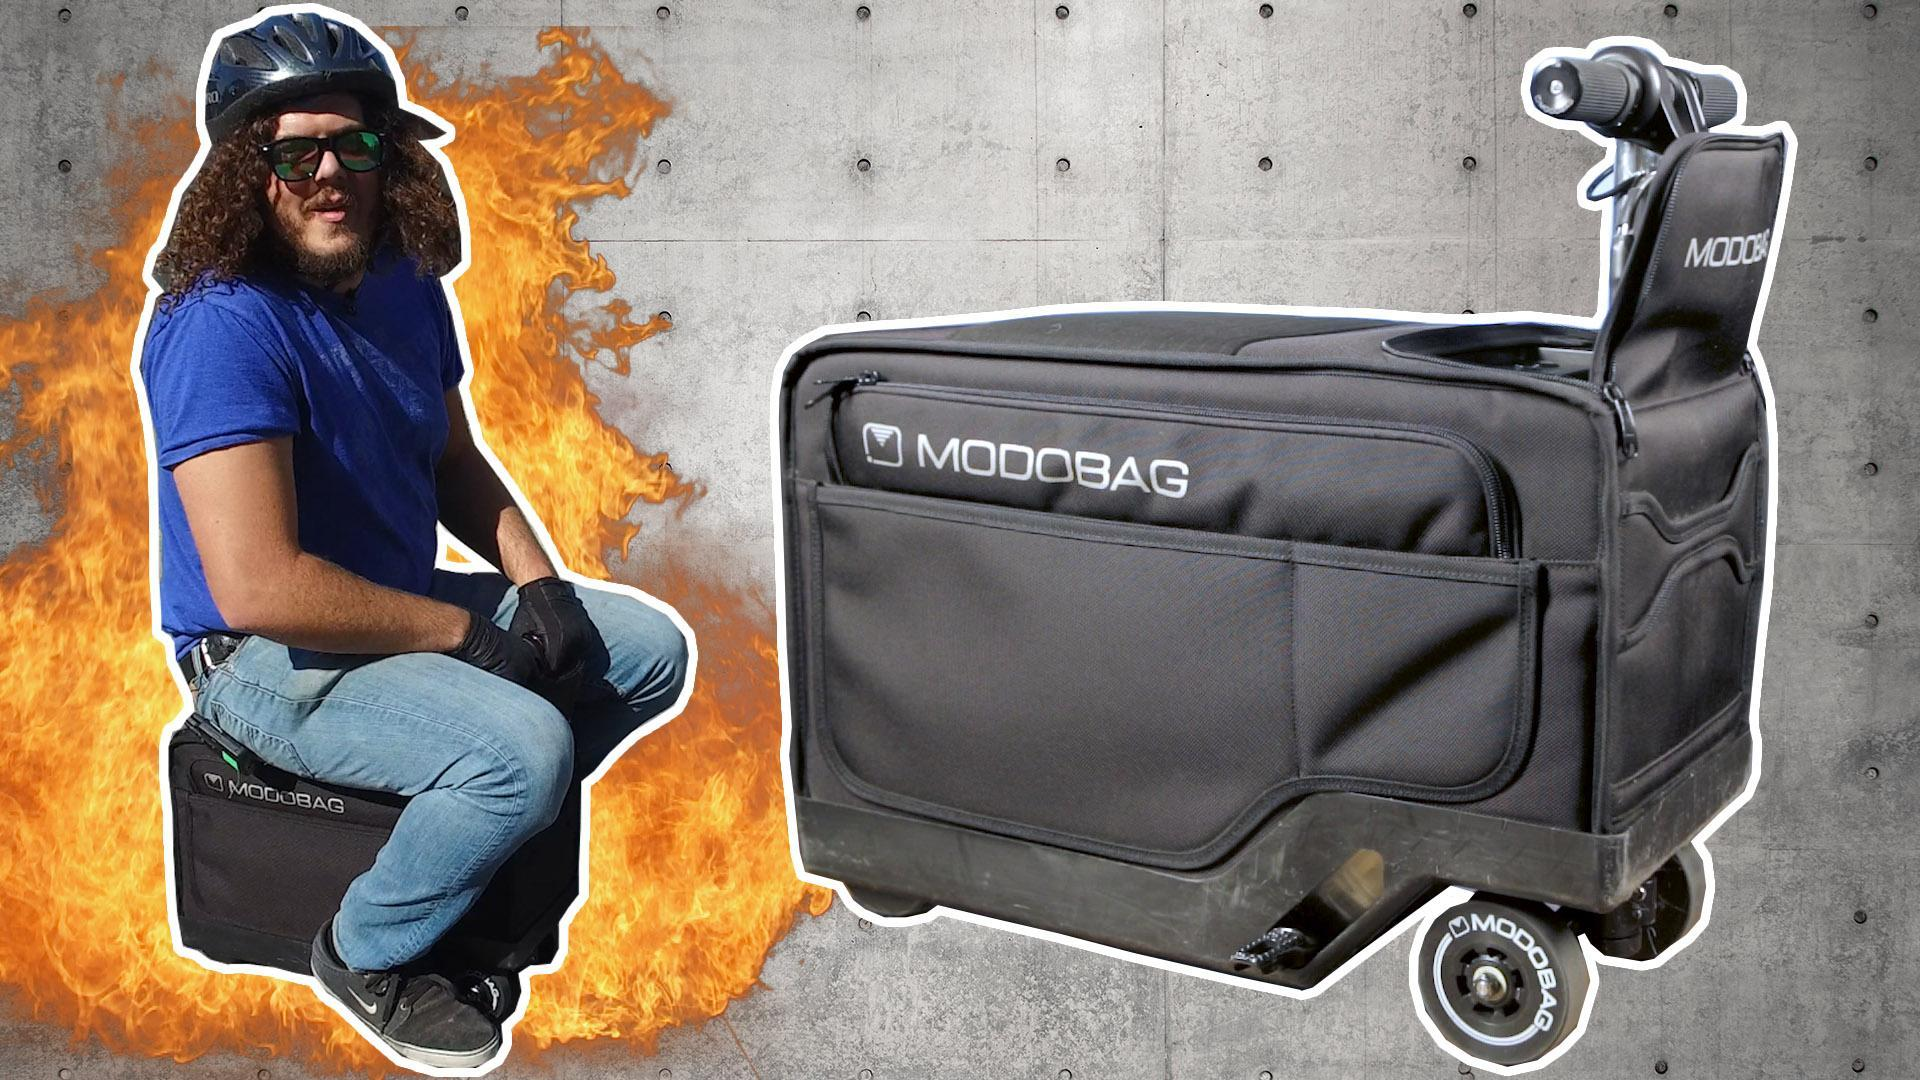 The Modobag Suitcase Is My New Hot Ride